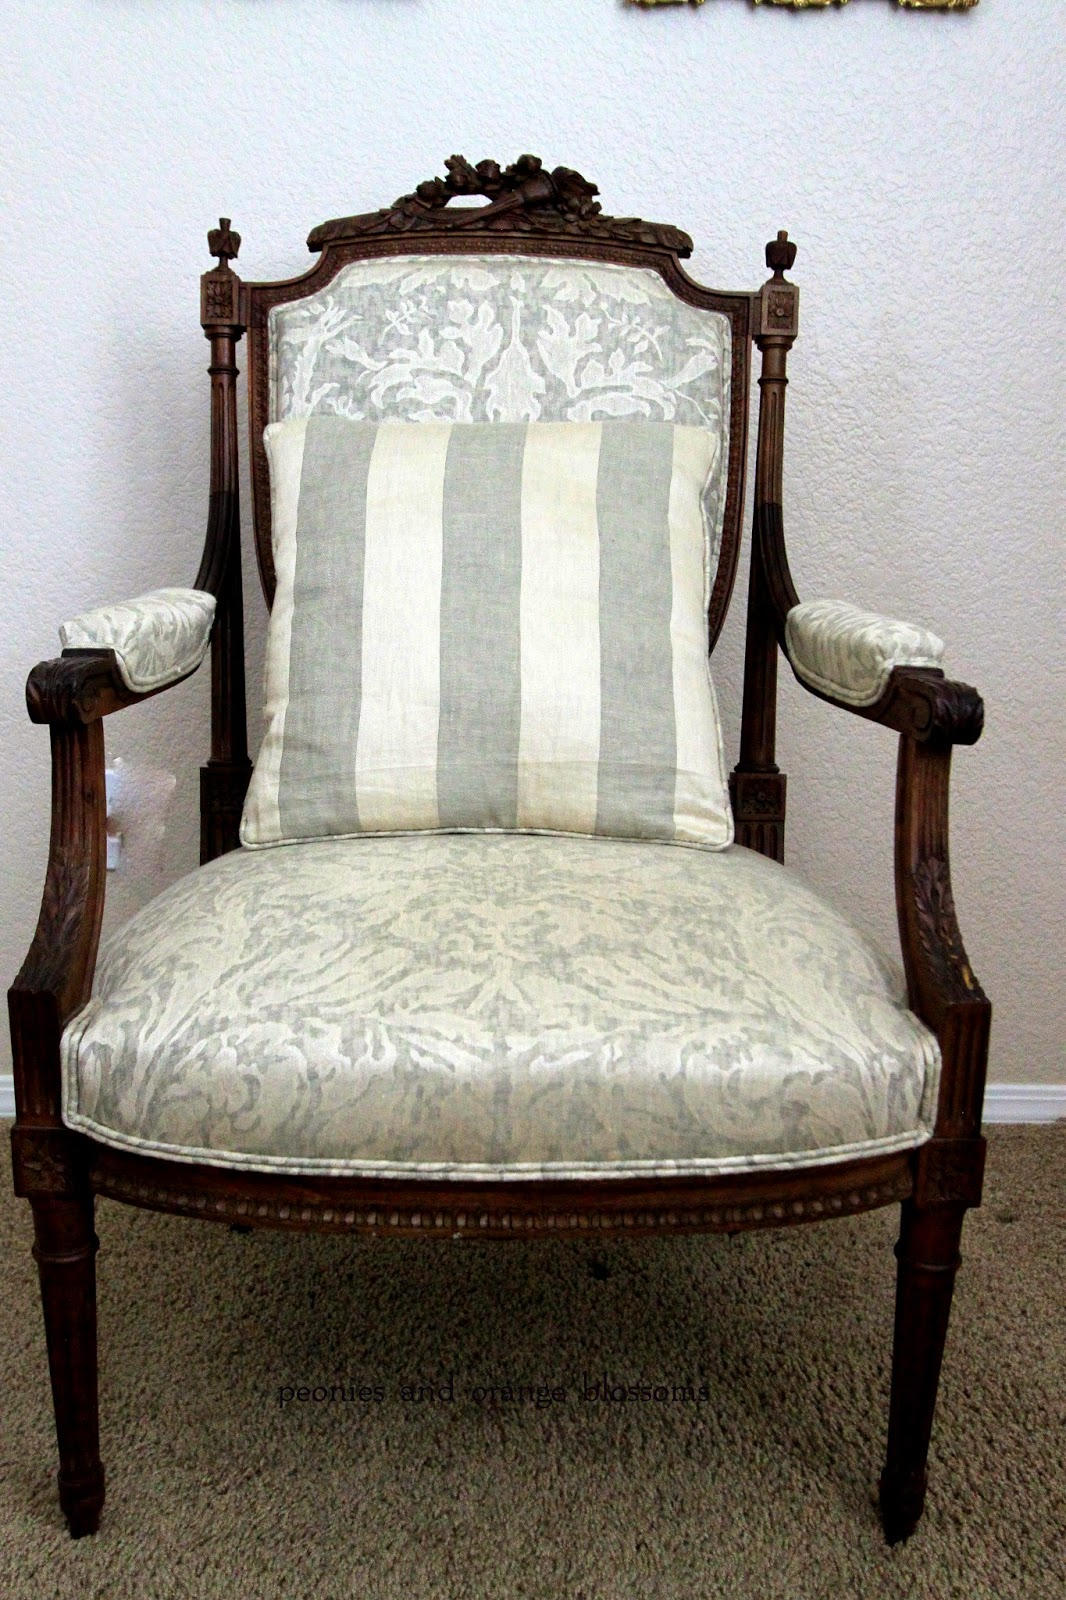 Antique french chair - The Other Side Of The Homemade Pillow Is This Pretty Striped Fabric Also By Rose Tarlow Love It The Style Of The Chair Is Louis Xvi